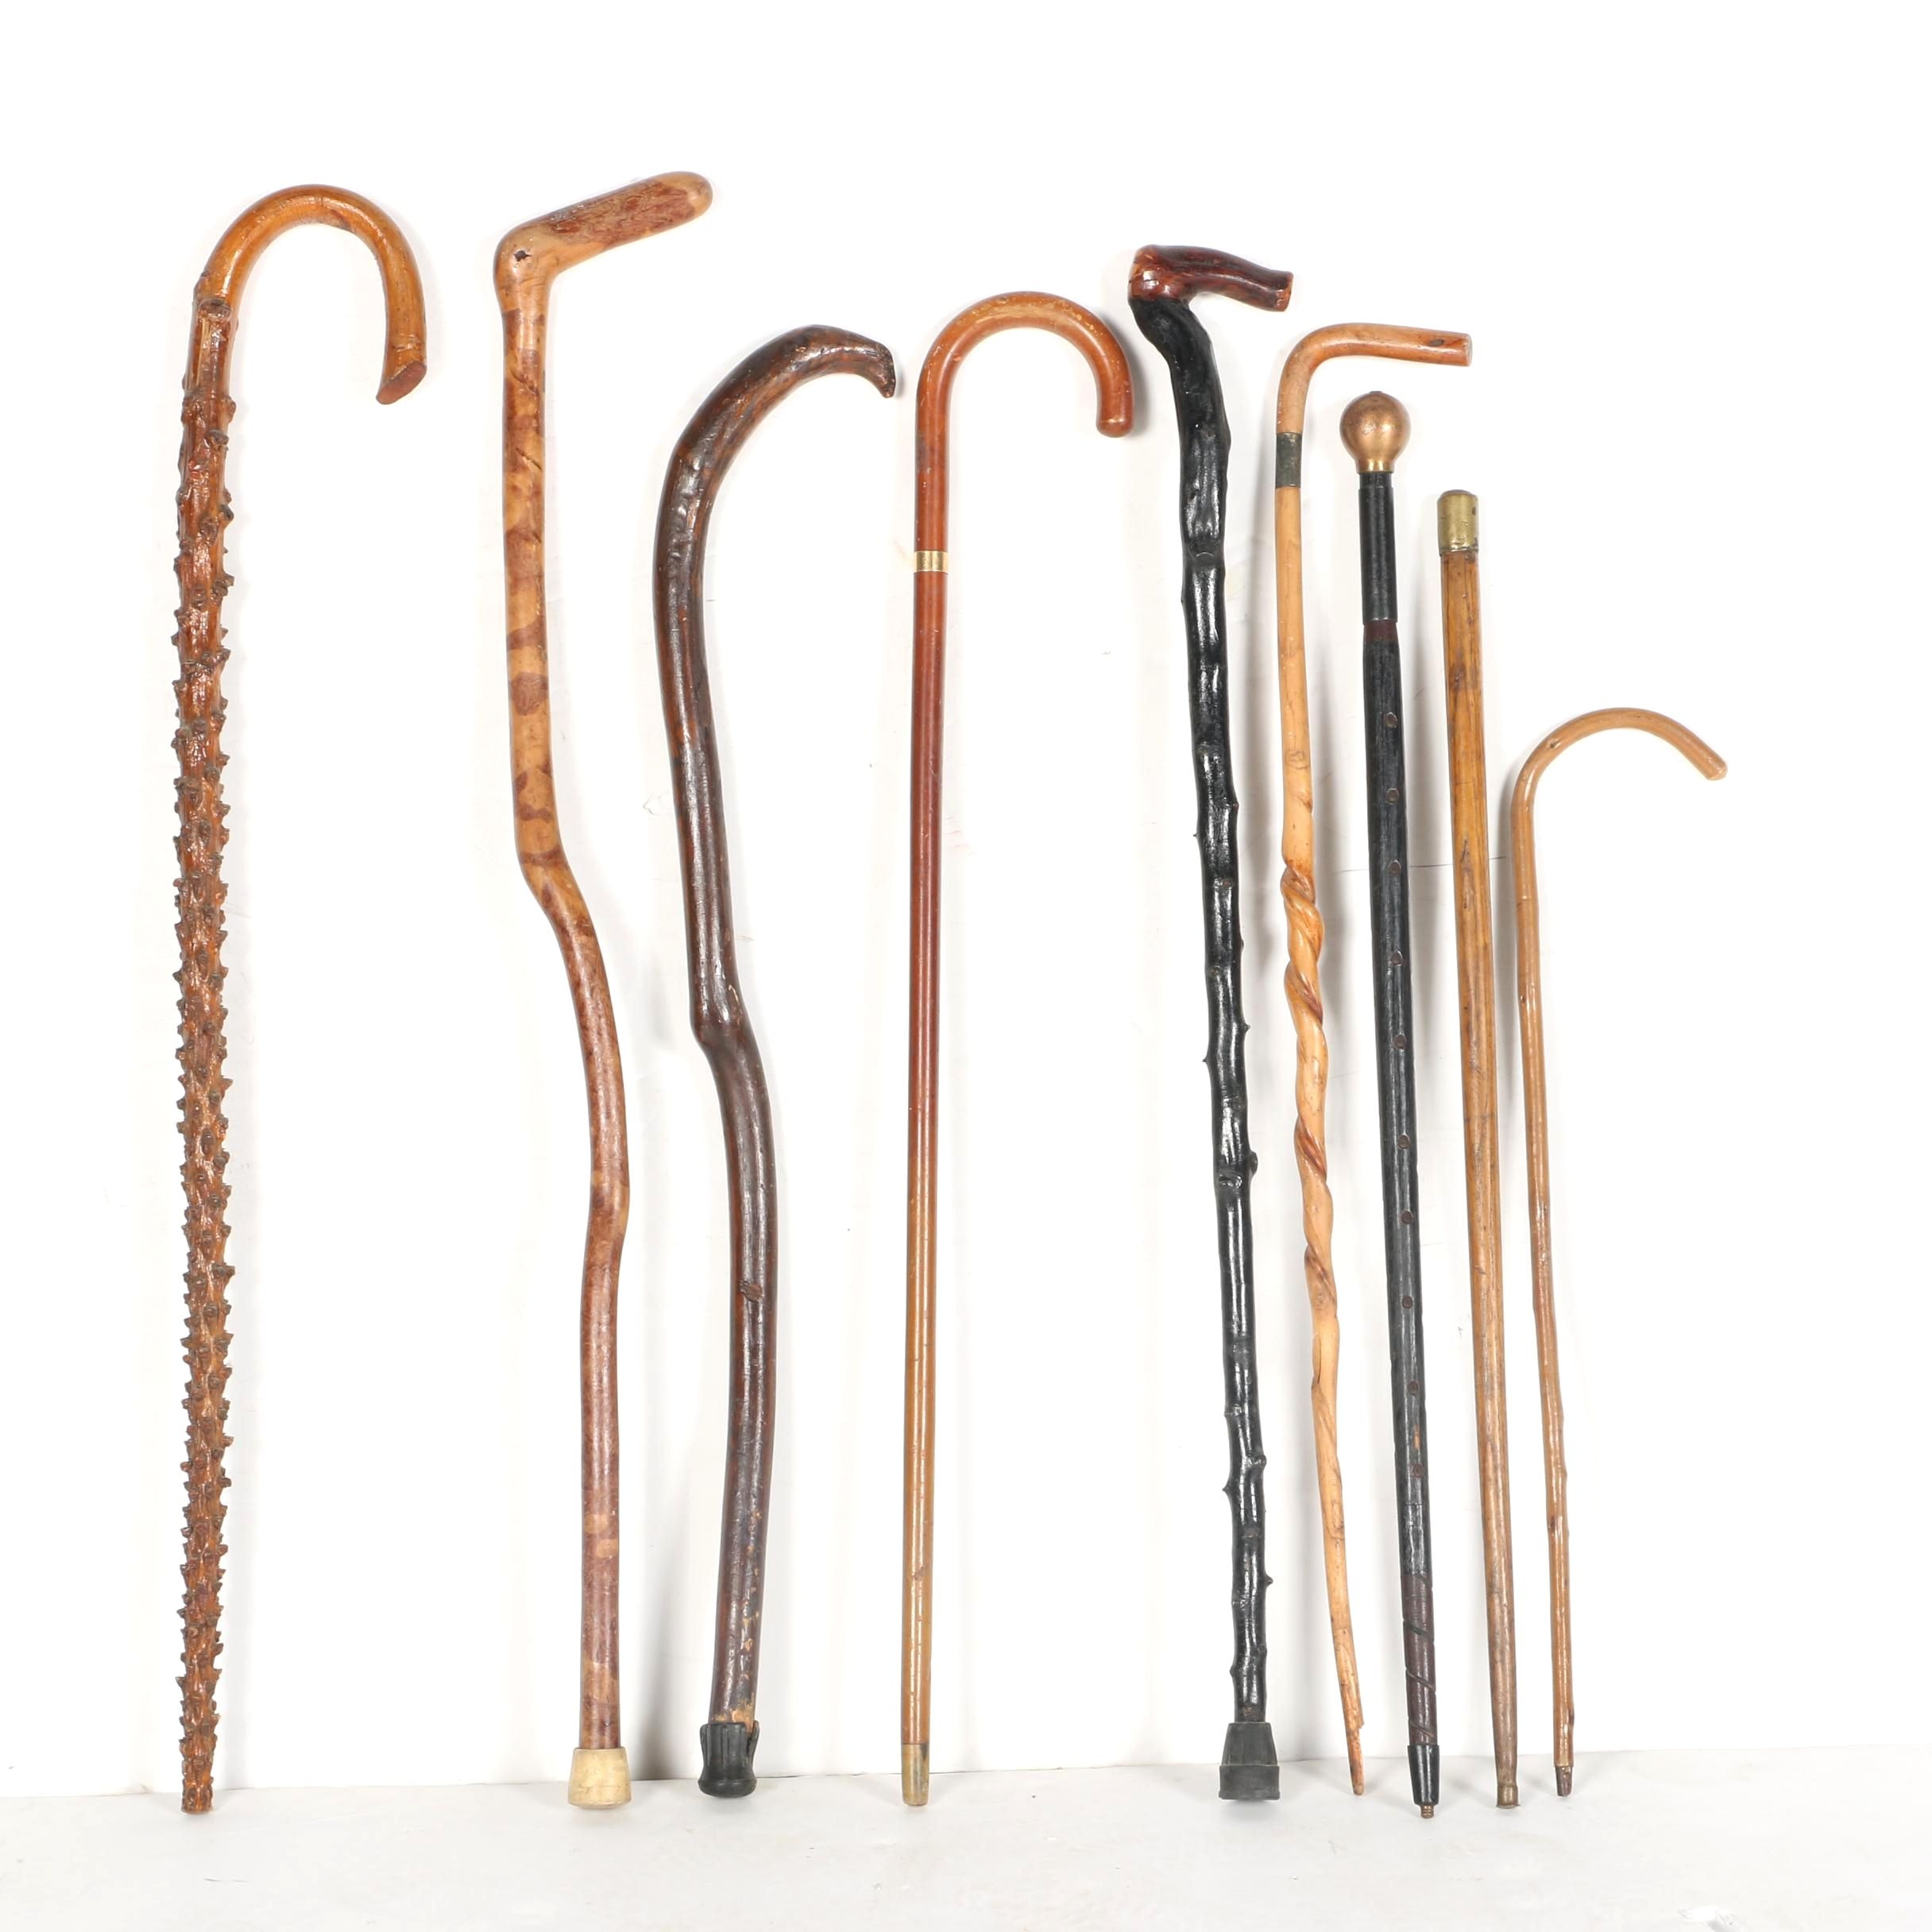 Wooden Walking Sticks and Canes